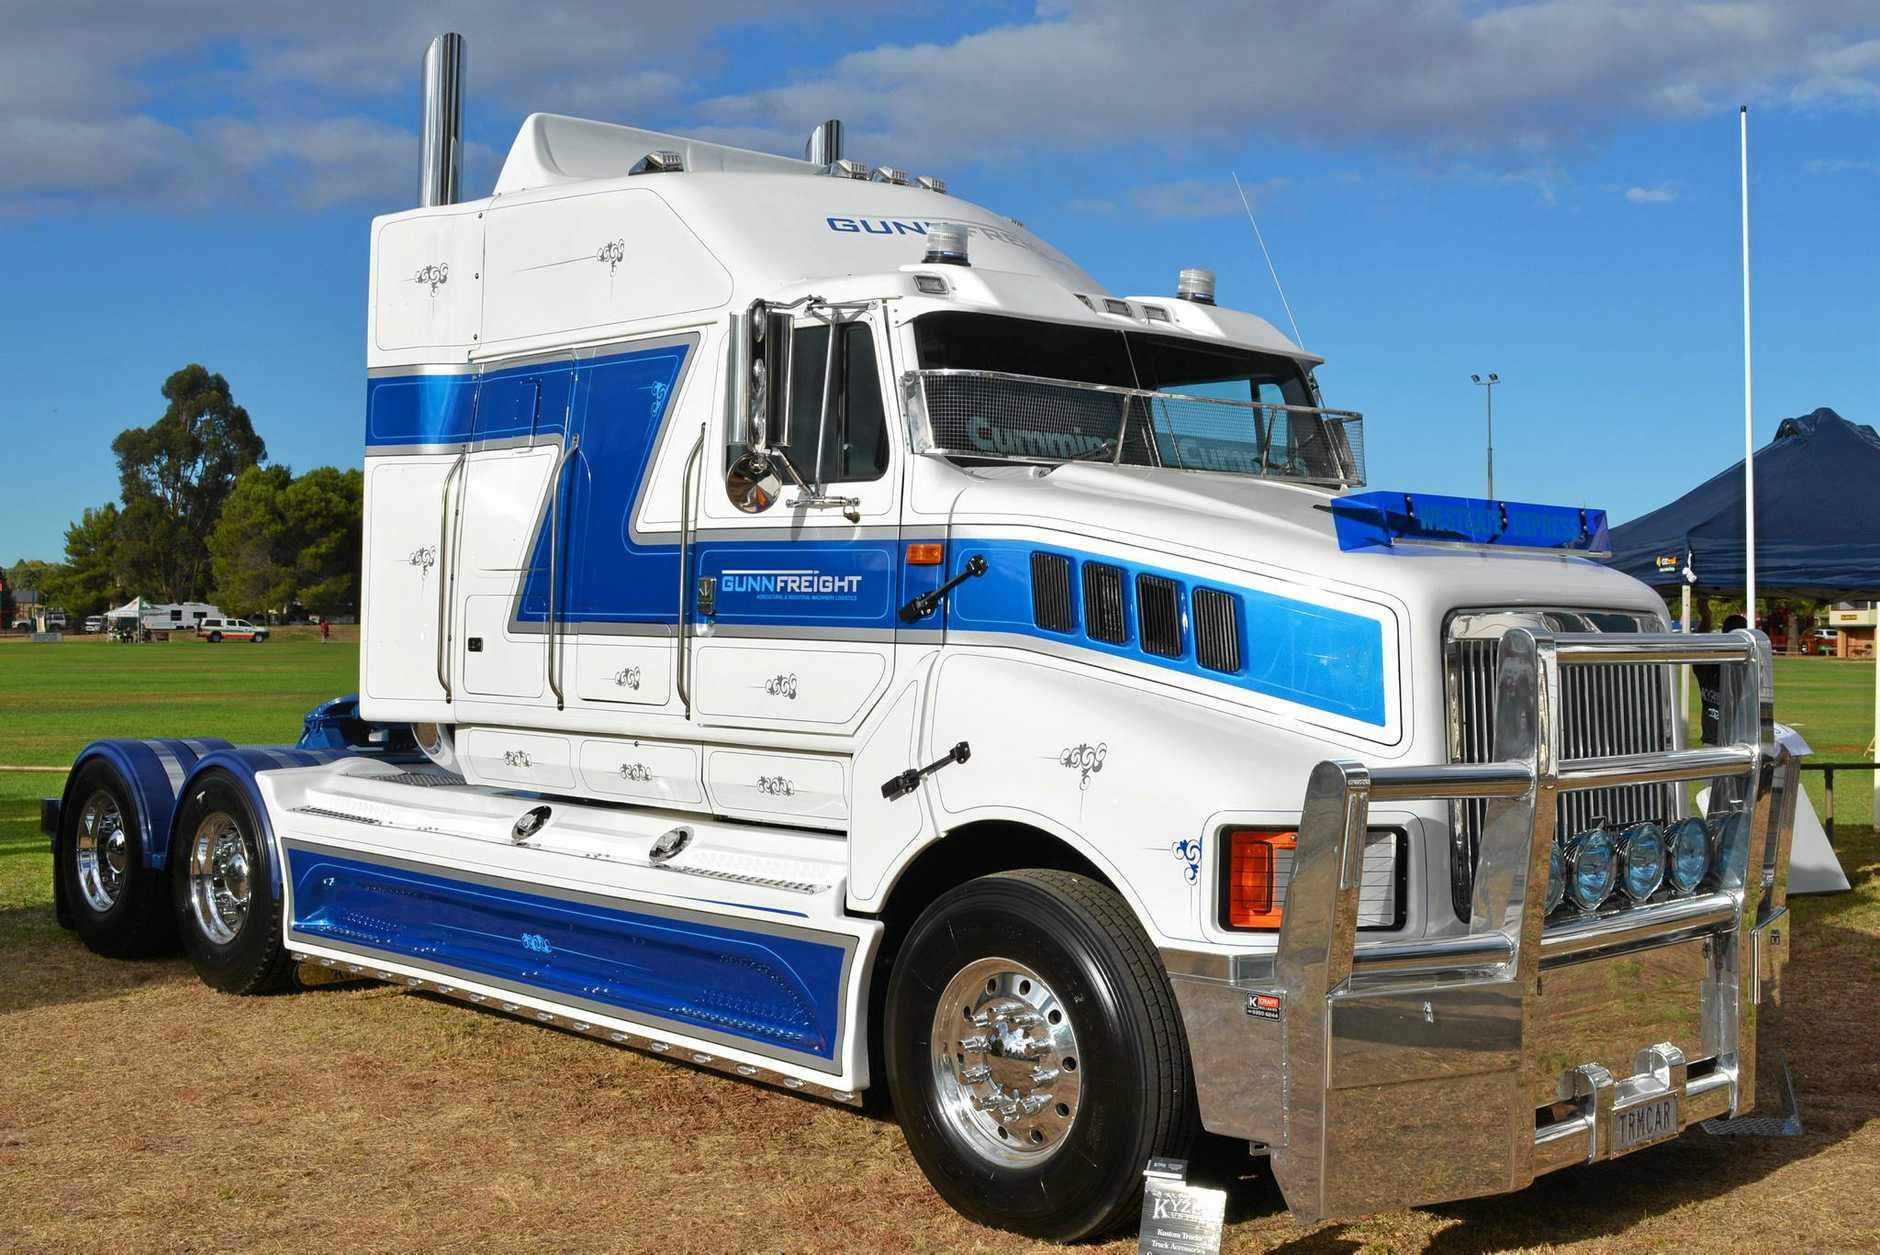 Gunnfreight's International Transtar took out the Best Truck 10-29 Years Category.